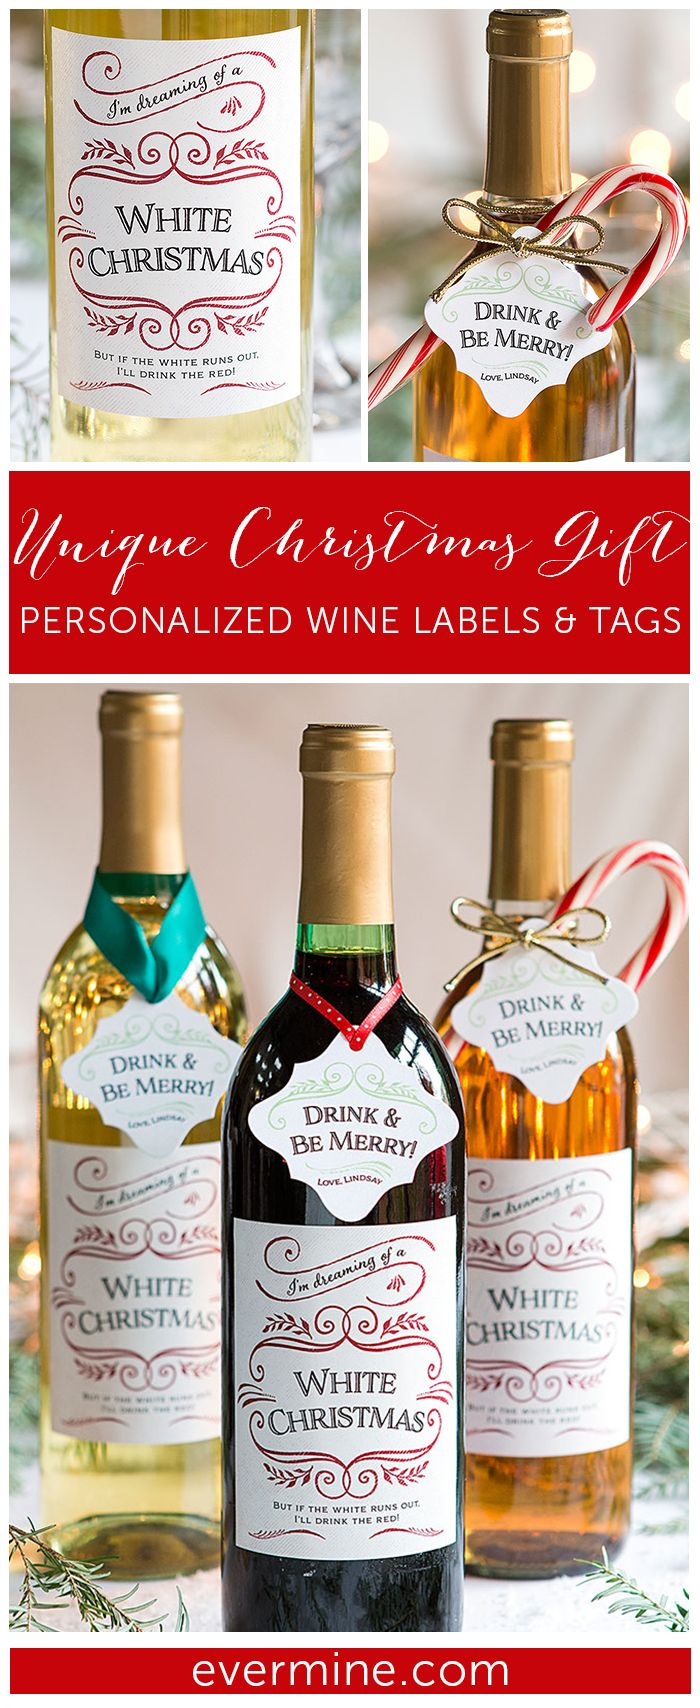 White Christmas Holiday Wine Labels Label Wording Ideas Diy Christmas Gifts Wine Wine Christmas Gifts Christmas Wine Label